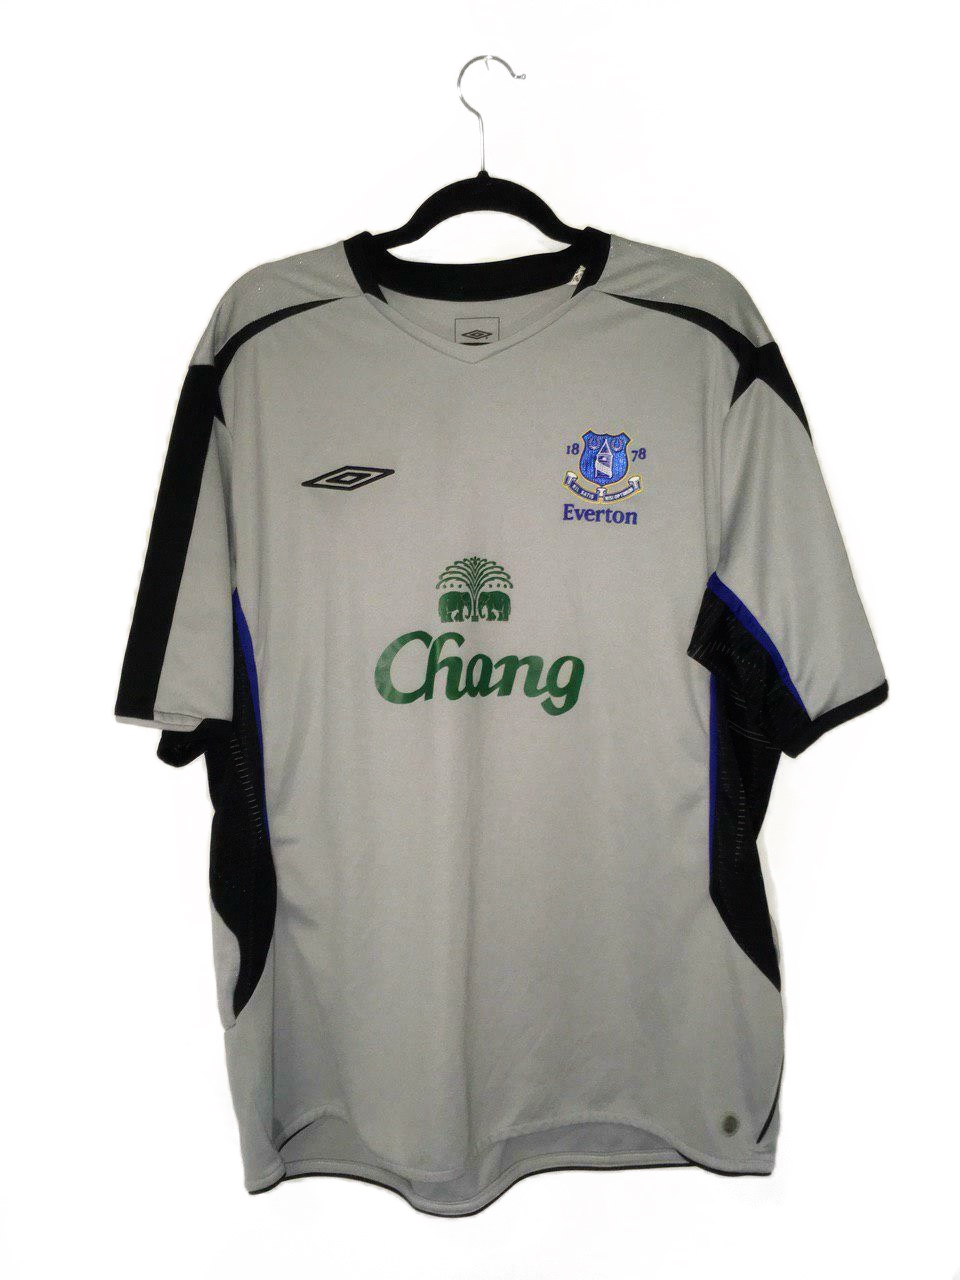 best service 253f5 30676 EVERTON 2005/2006 AWAY SHIRT